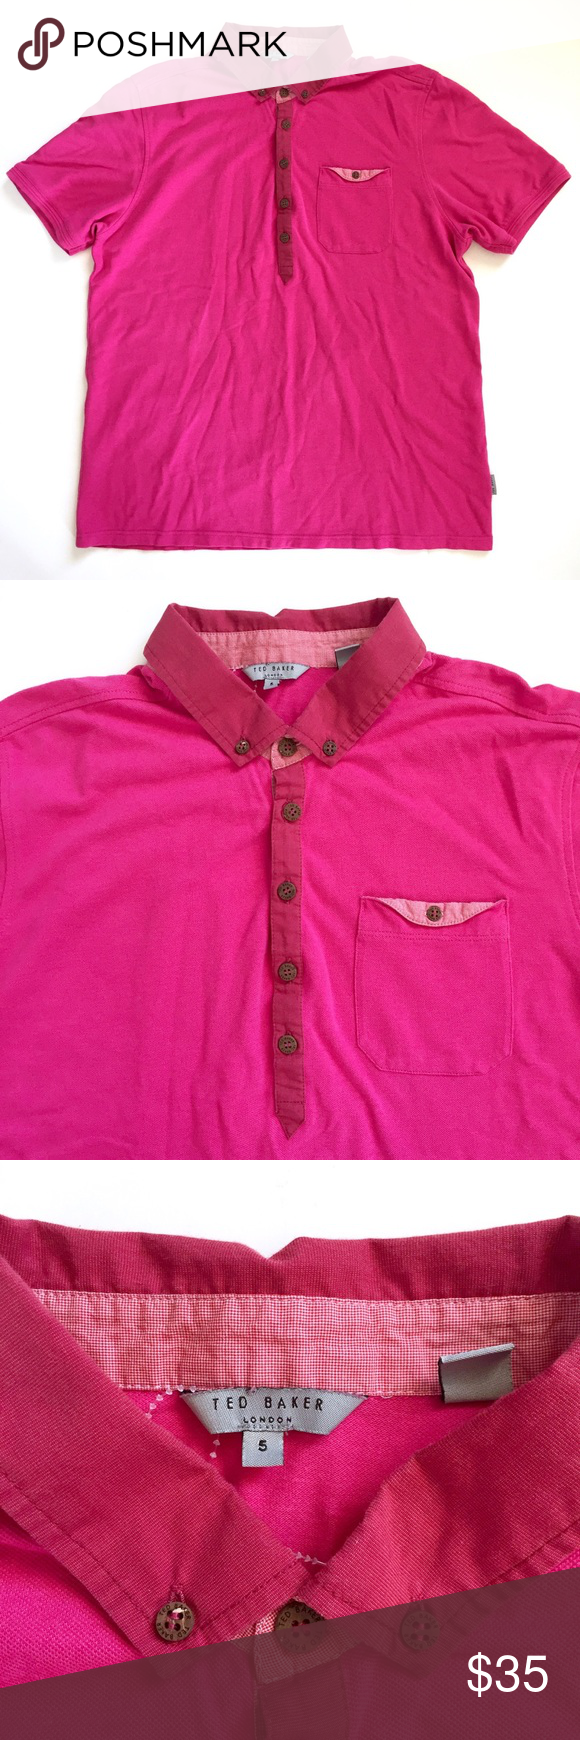 9a59d2756 Ted Baker Mens Magenta Pink Polo Shirt Size 5   XL Designed with a breast  pocket